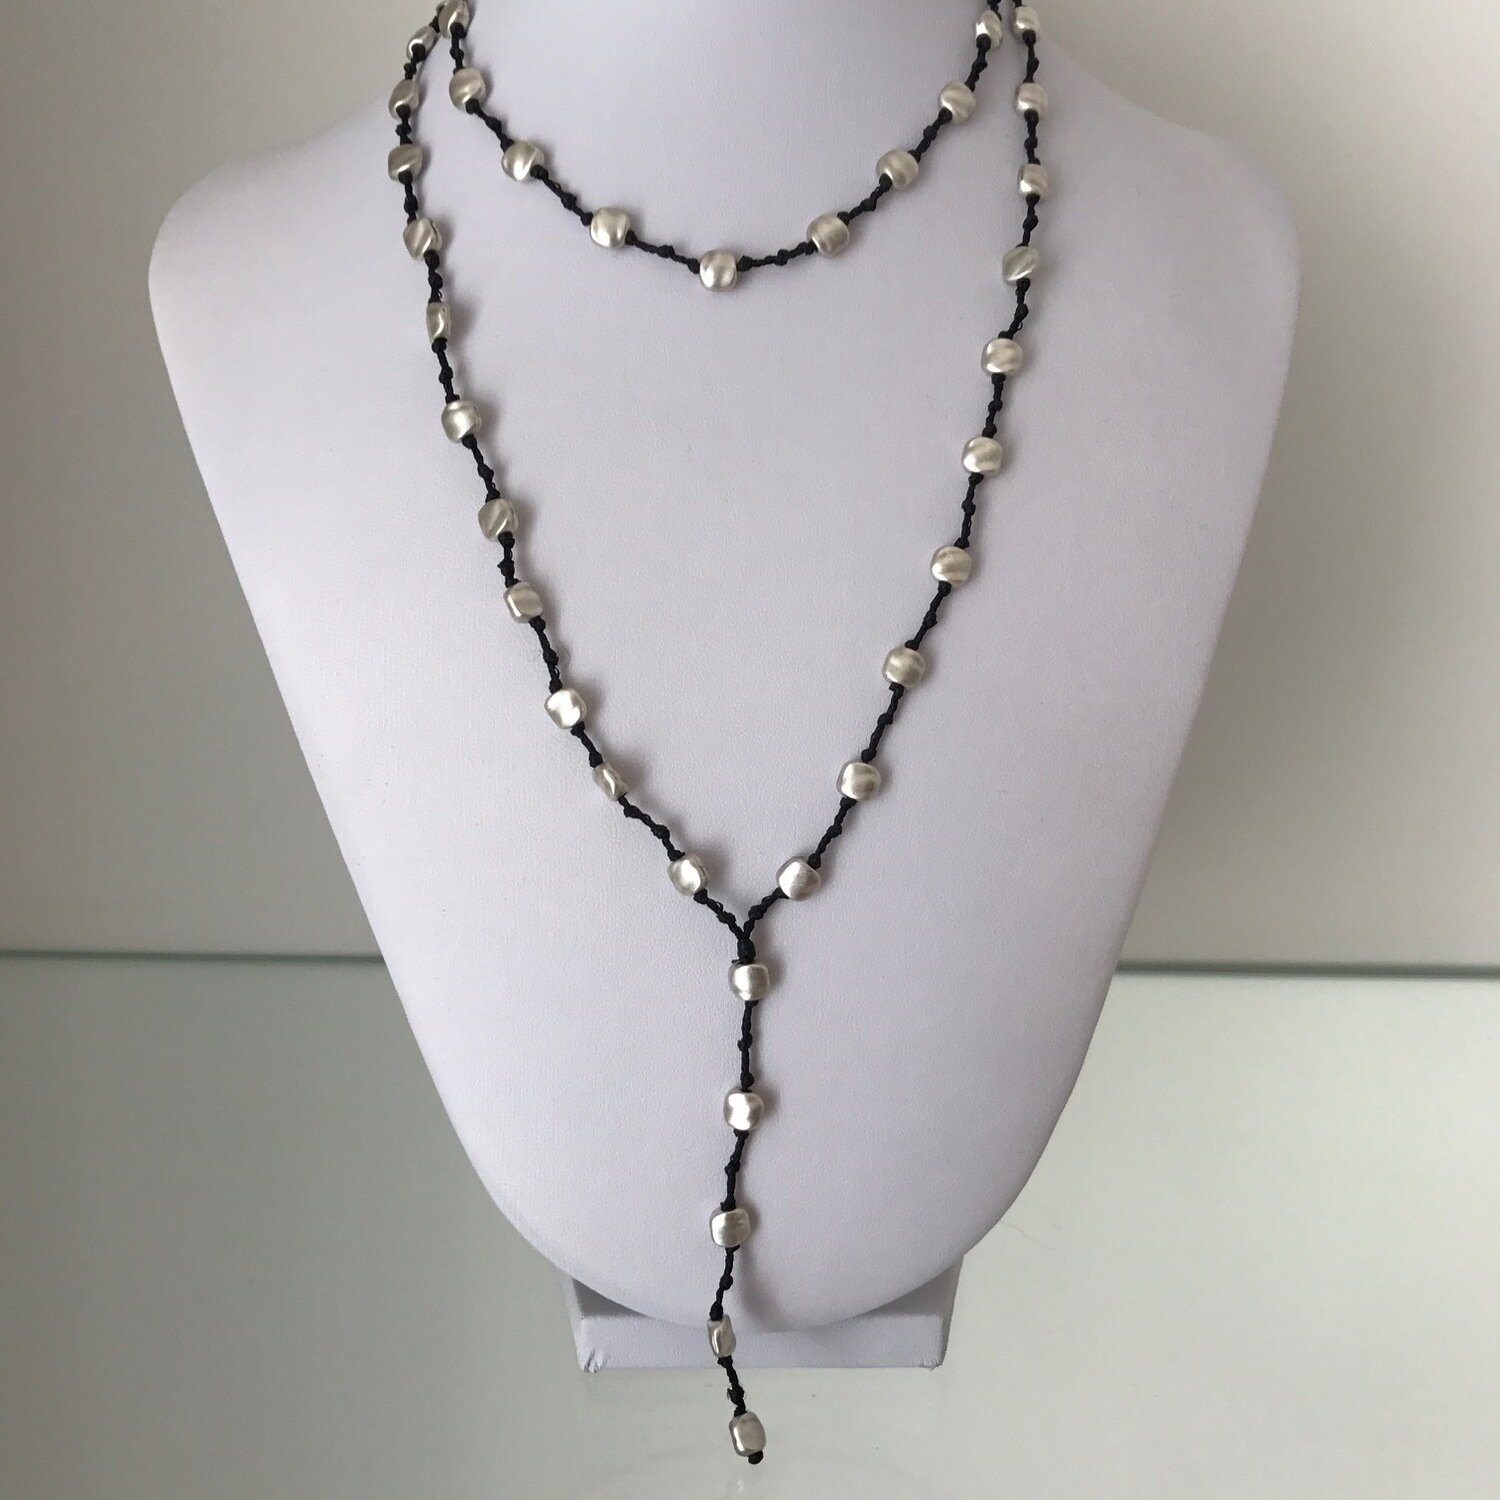 JD011BLK - Silver Plated Necklace